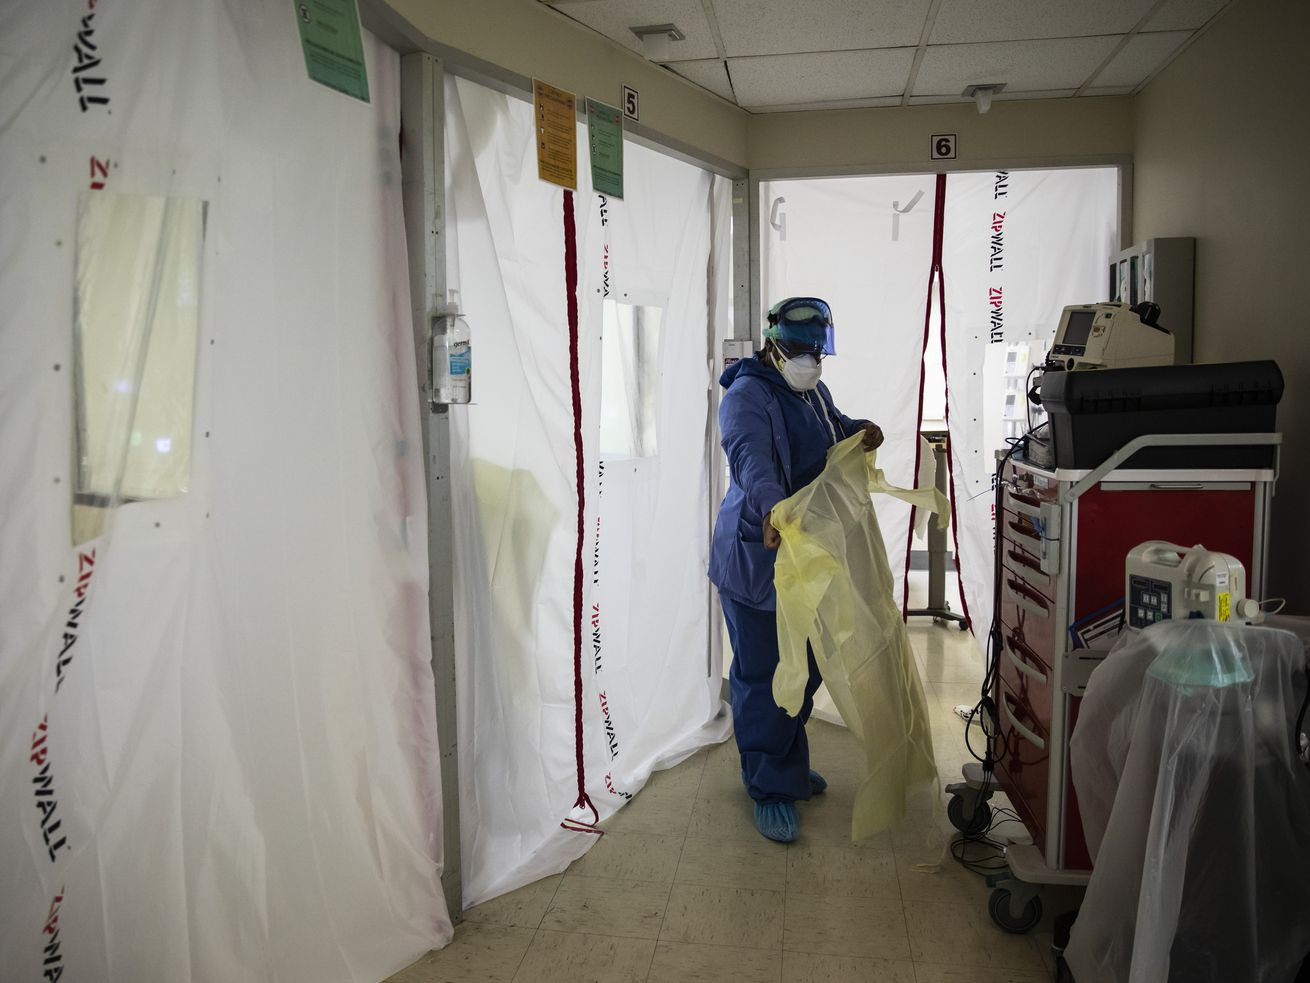 A nurse suits up with protective equipment before entering the COVID-19 unit last year at Roseland Community Hospital. ICU beds were full for all of southern Illinois Monday night.